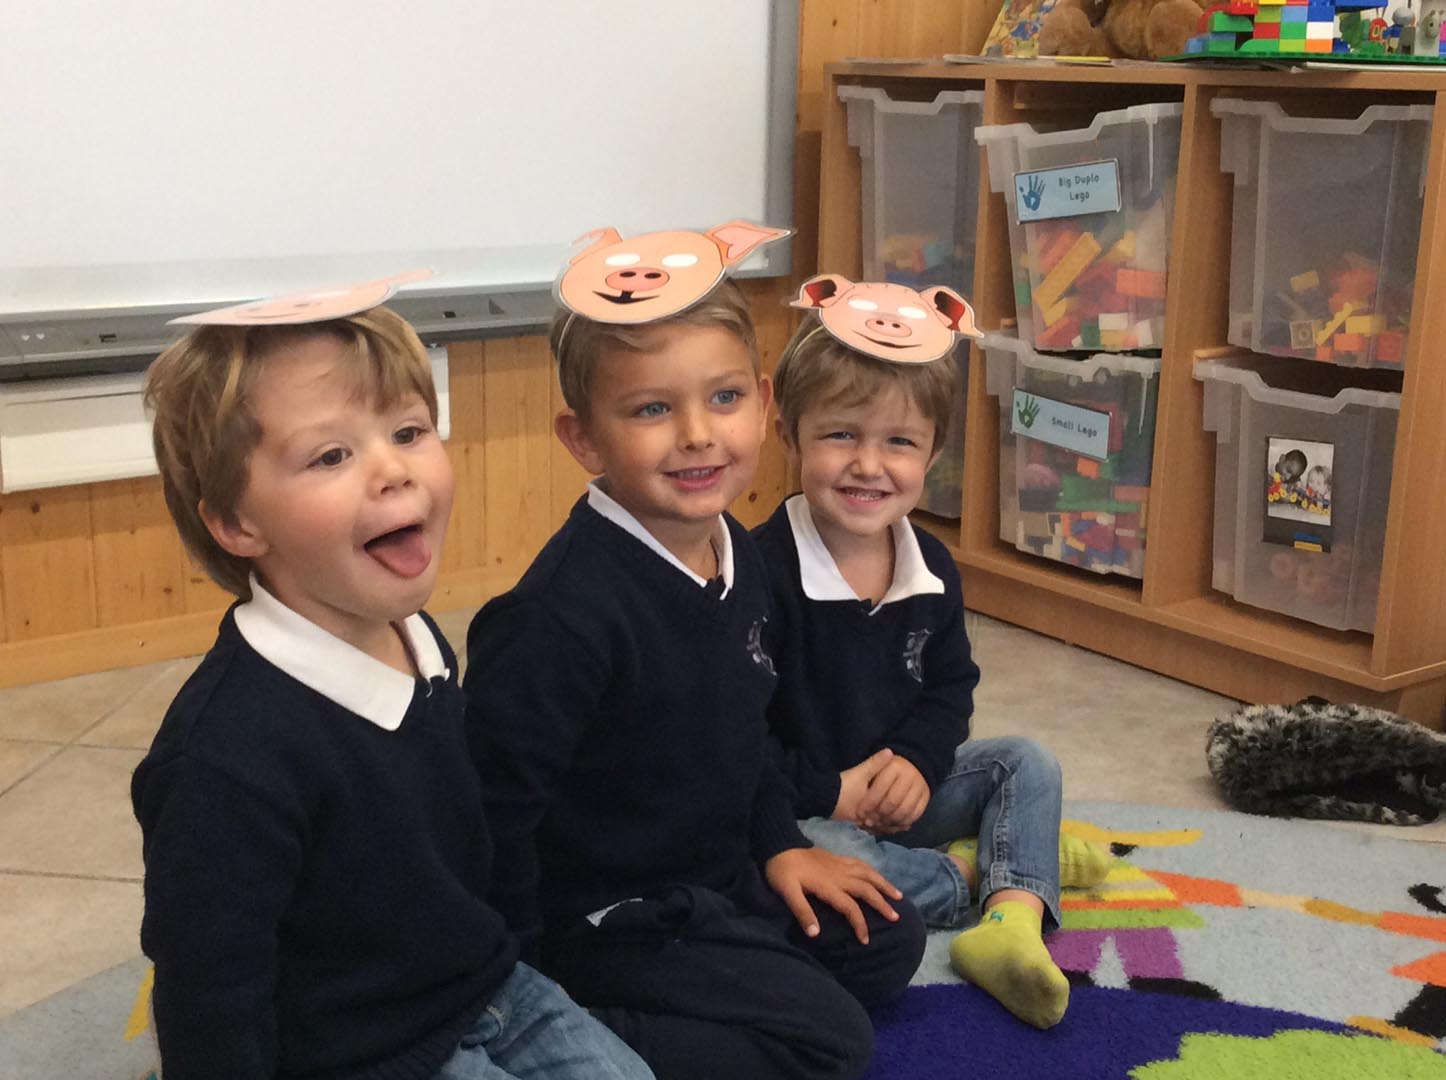 Exploring the story of 'The Three Little Pigs'